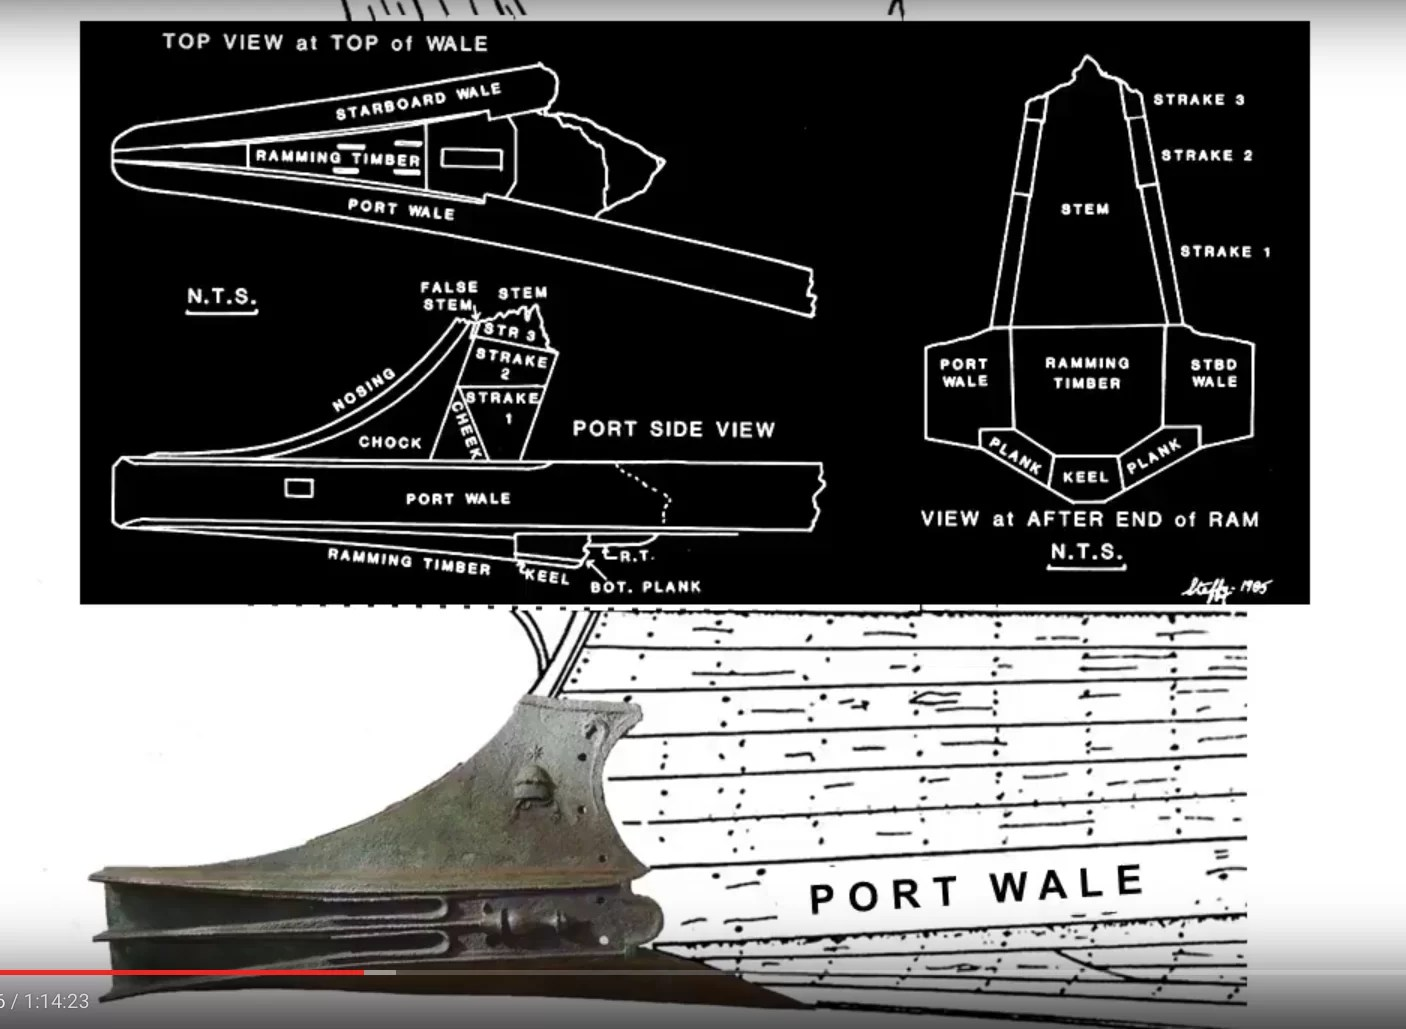 hight resolution of a screenshot from a youtube lecture about the importance and design of the trireme this shows the ramming timber and the role it played in distributing the